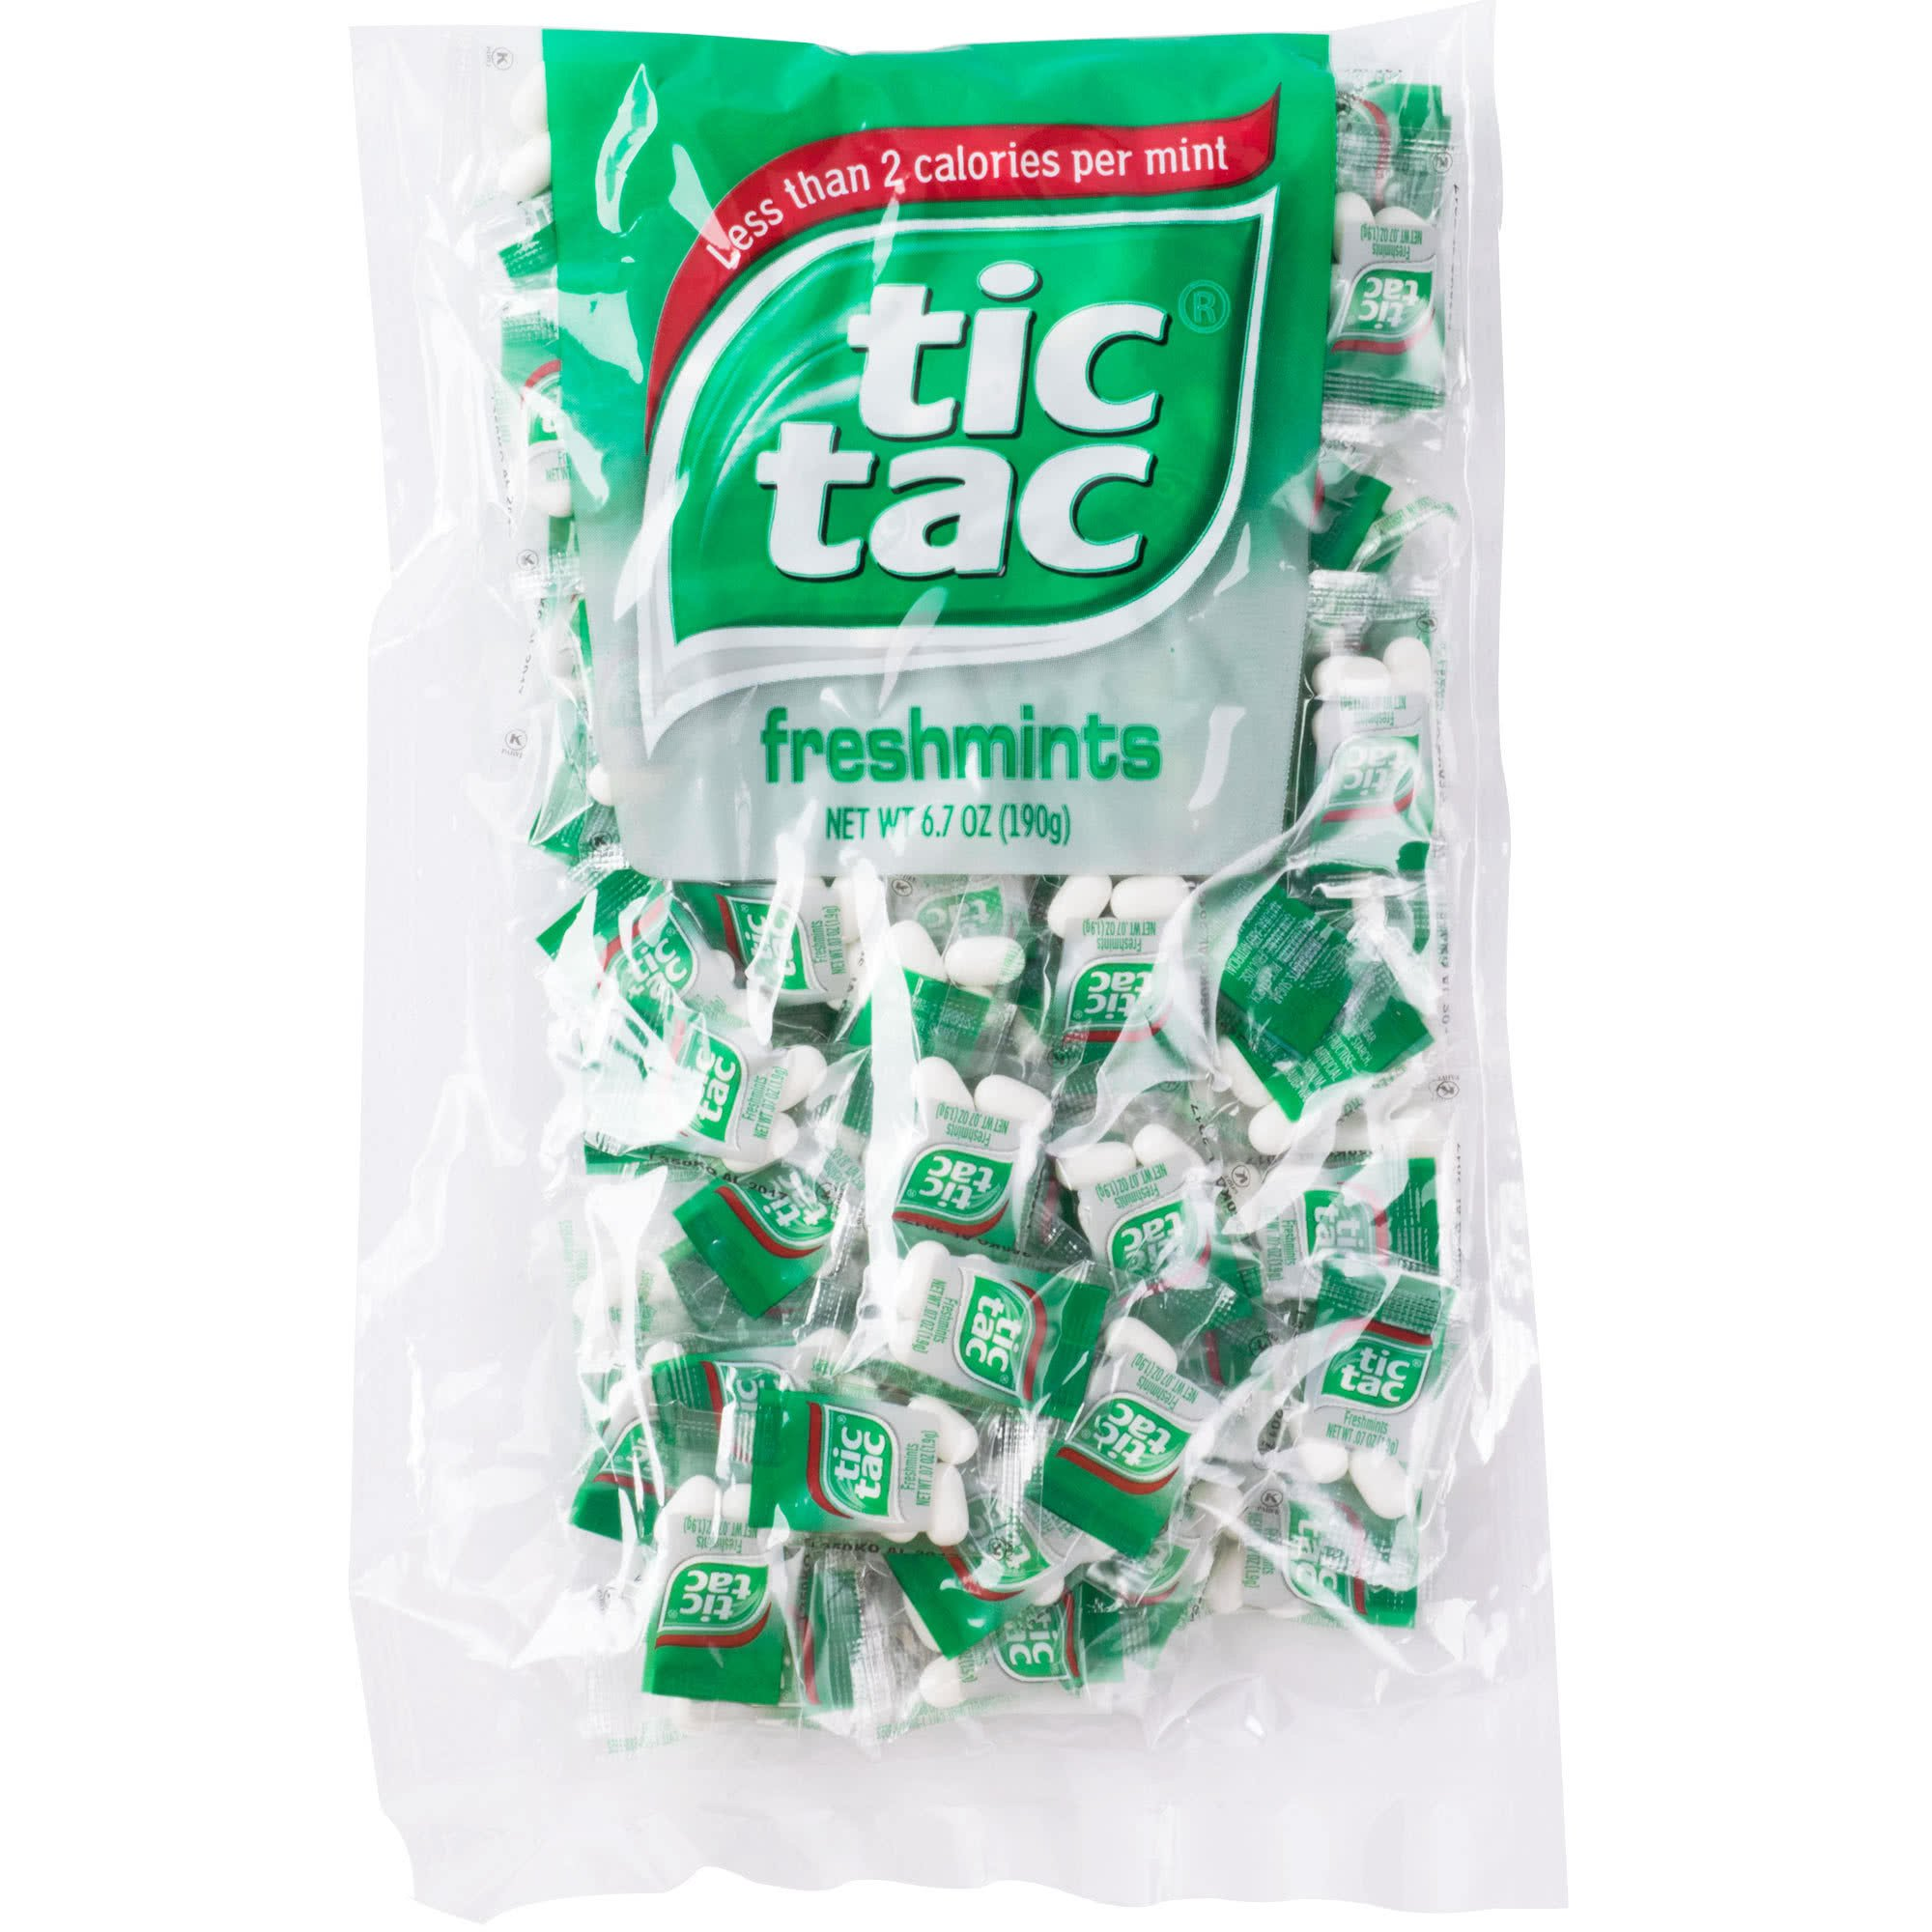 tic tac Freshmint Pillow Pack, 100 Count bag (Pack of 3) 300 individually wrapped packs of 4 mints each